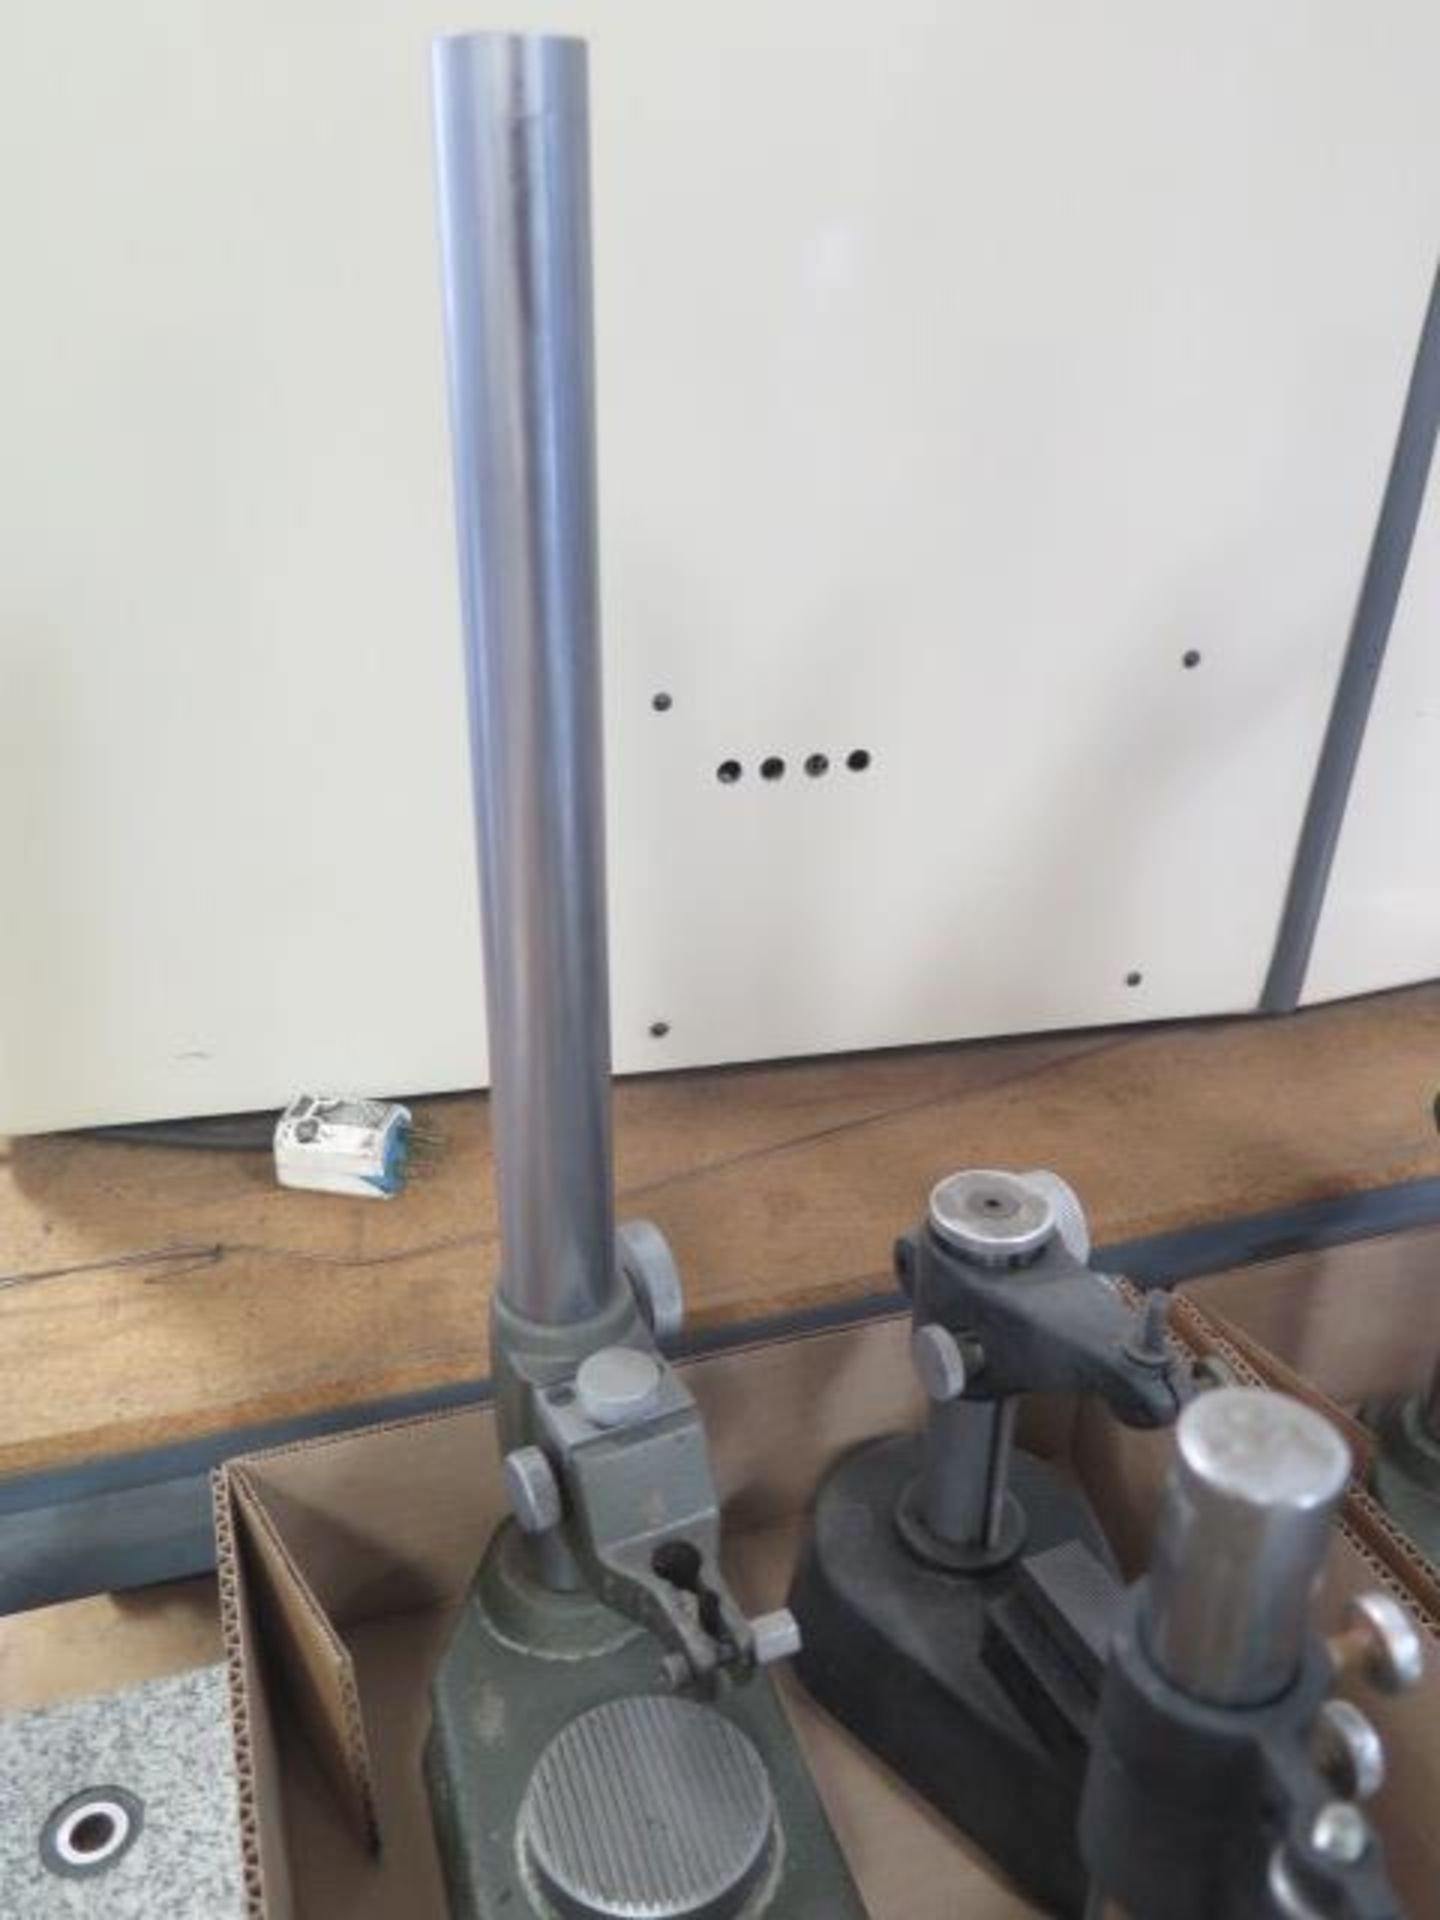 Misc Indicator Stands (3) (SOLD AS-IS - NO WARRANTY) - Image 3 of 6